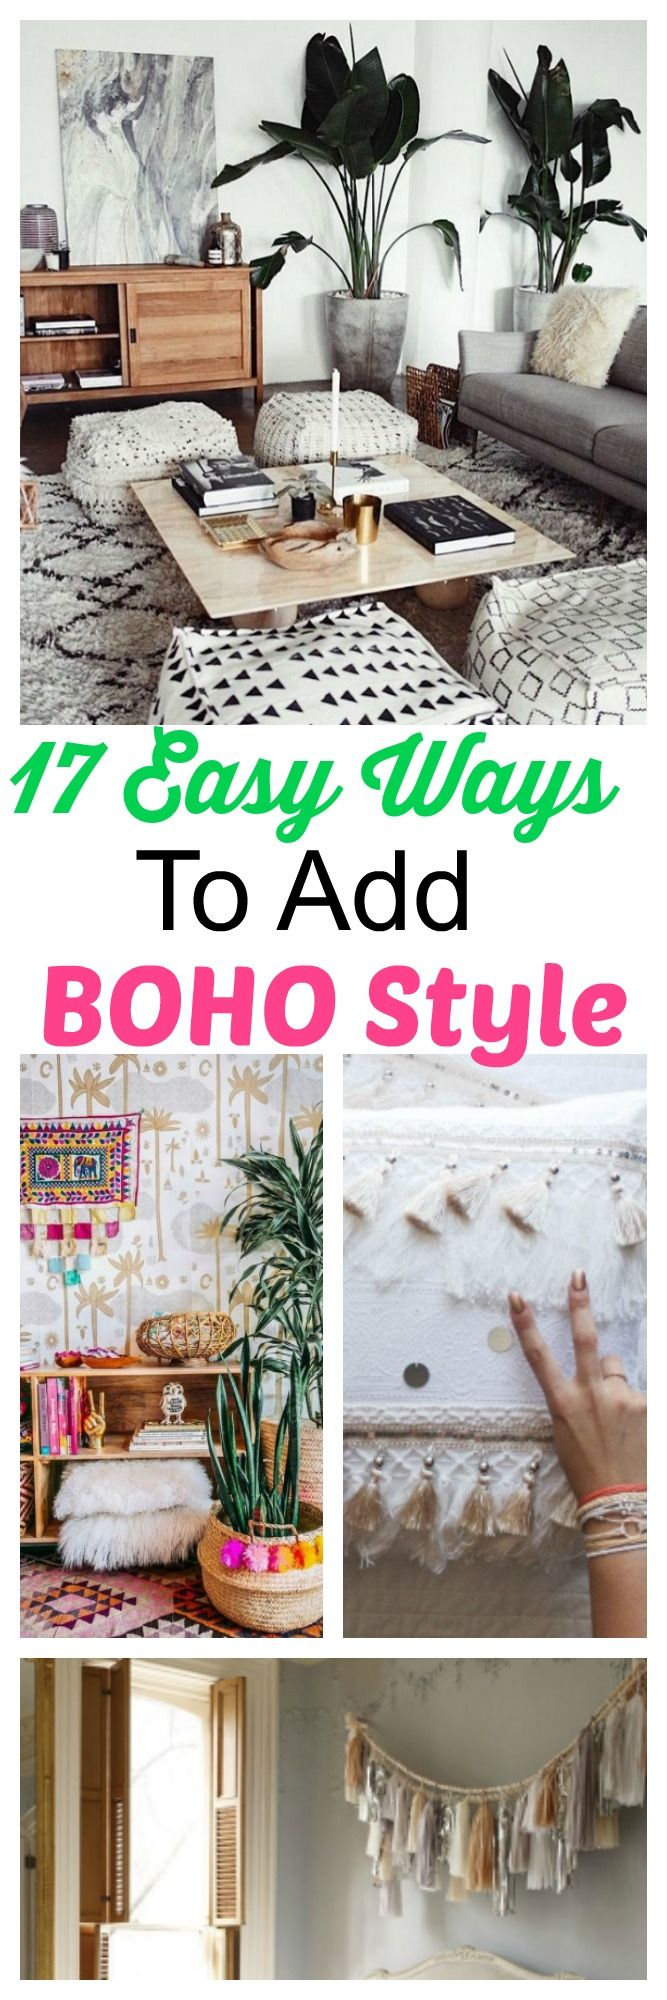 Boho decorating ideas for your first cozy home decor tips